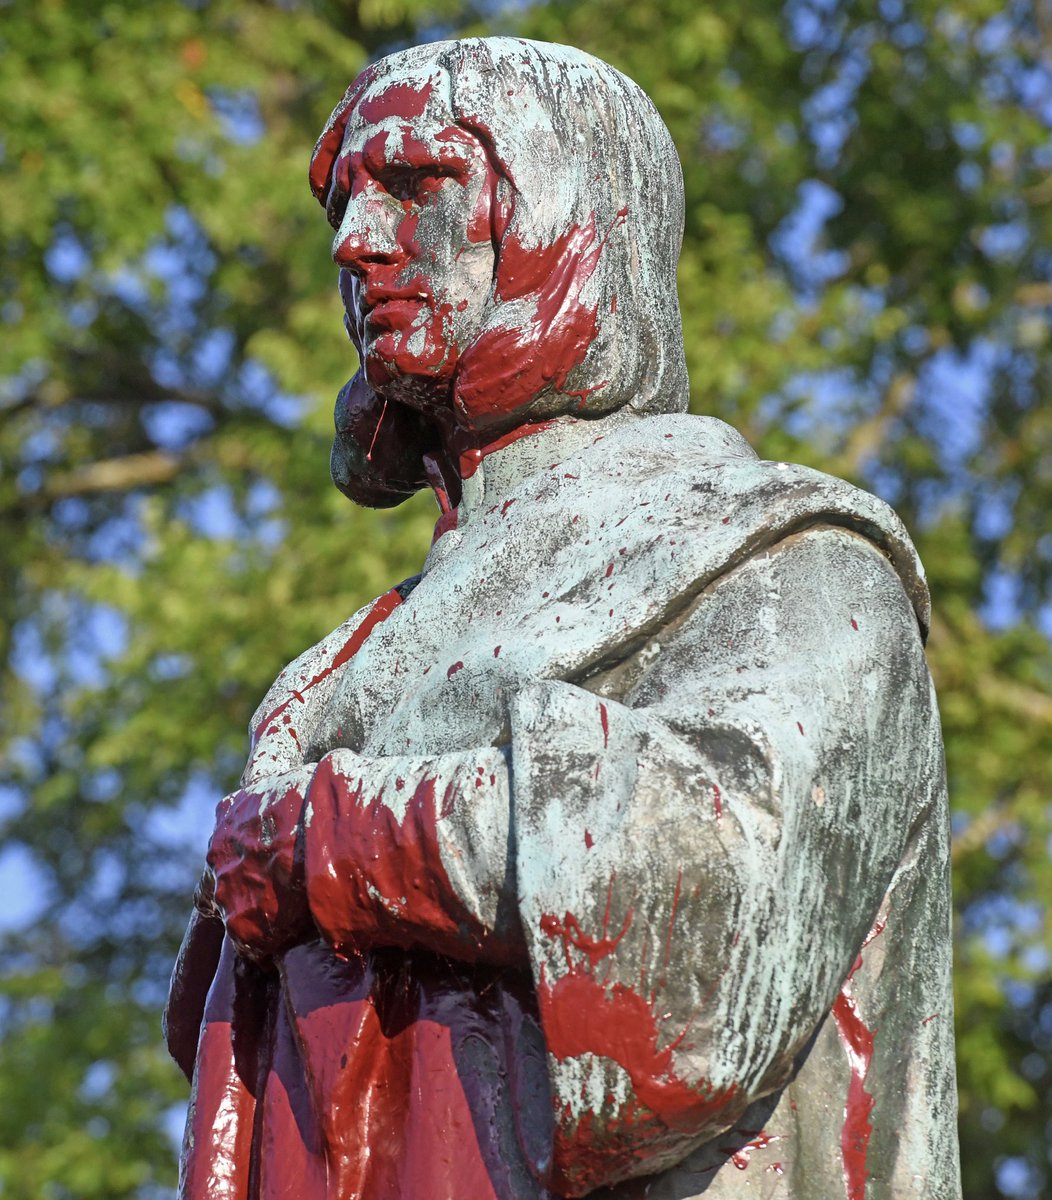 The Christopher Columbus statue in Byrd Park was torn down this evening by protesters, who then threw it in Boat Lake.